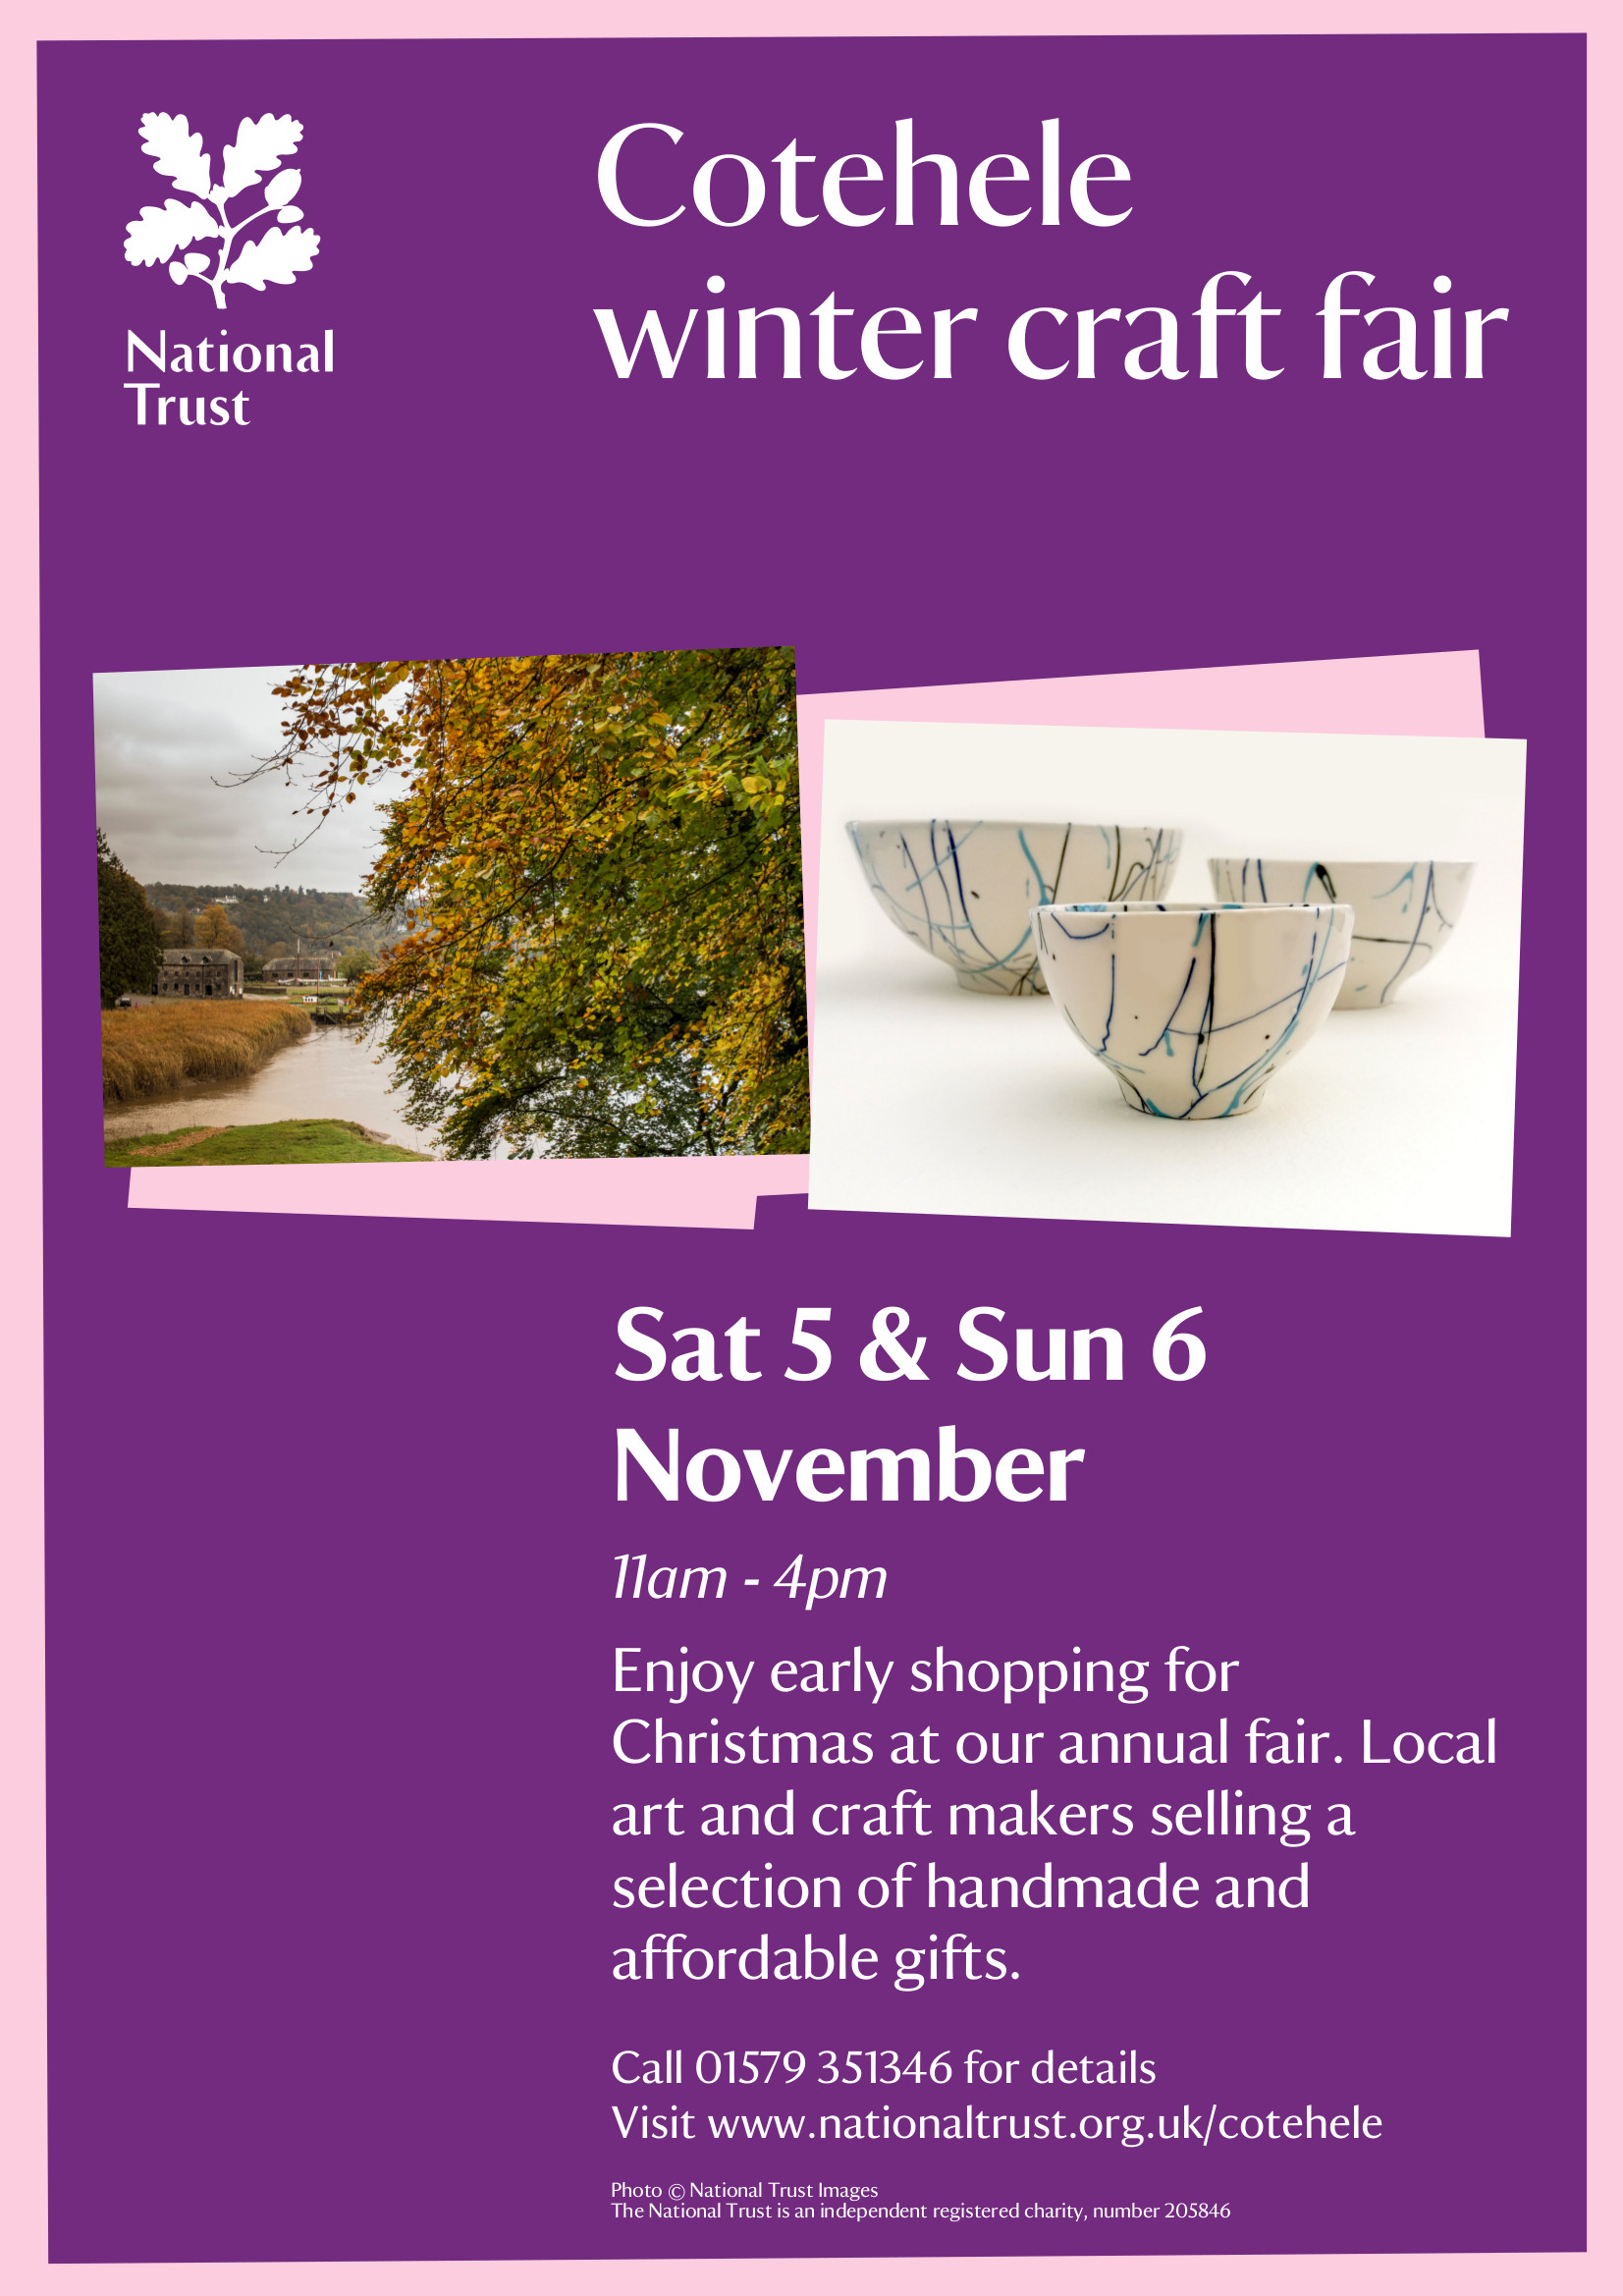 Cotehele Craft Fair - Christmas